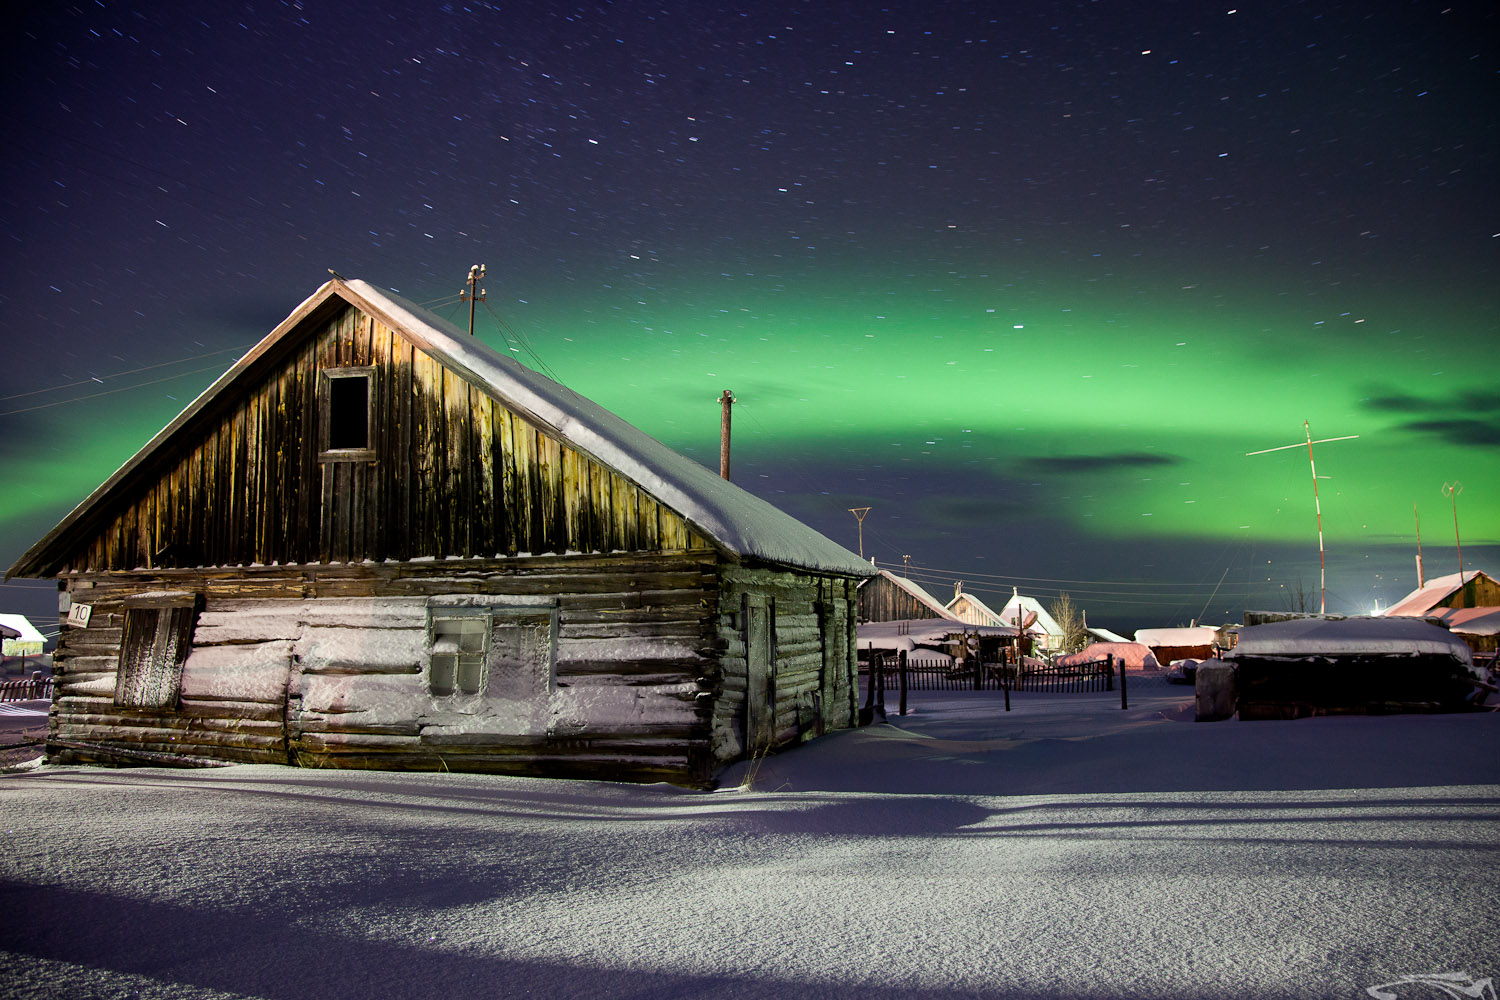 Northern Lights in Lovoziero, Kola Peninsula, Russia.